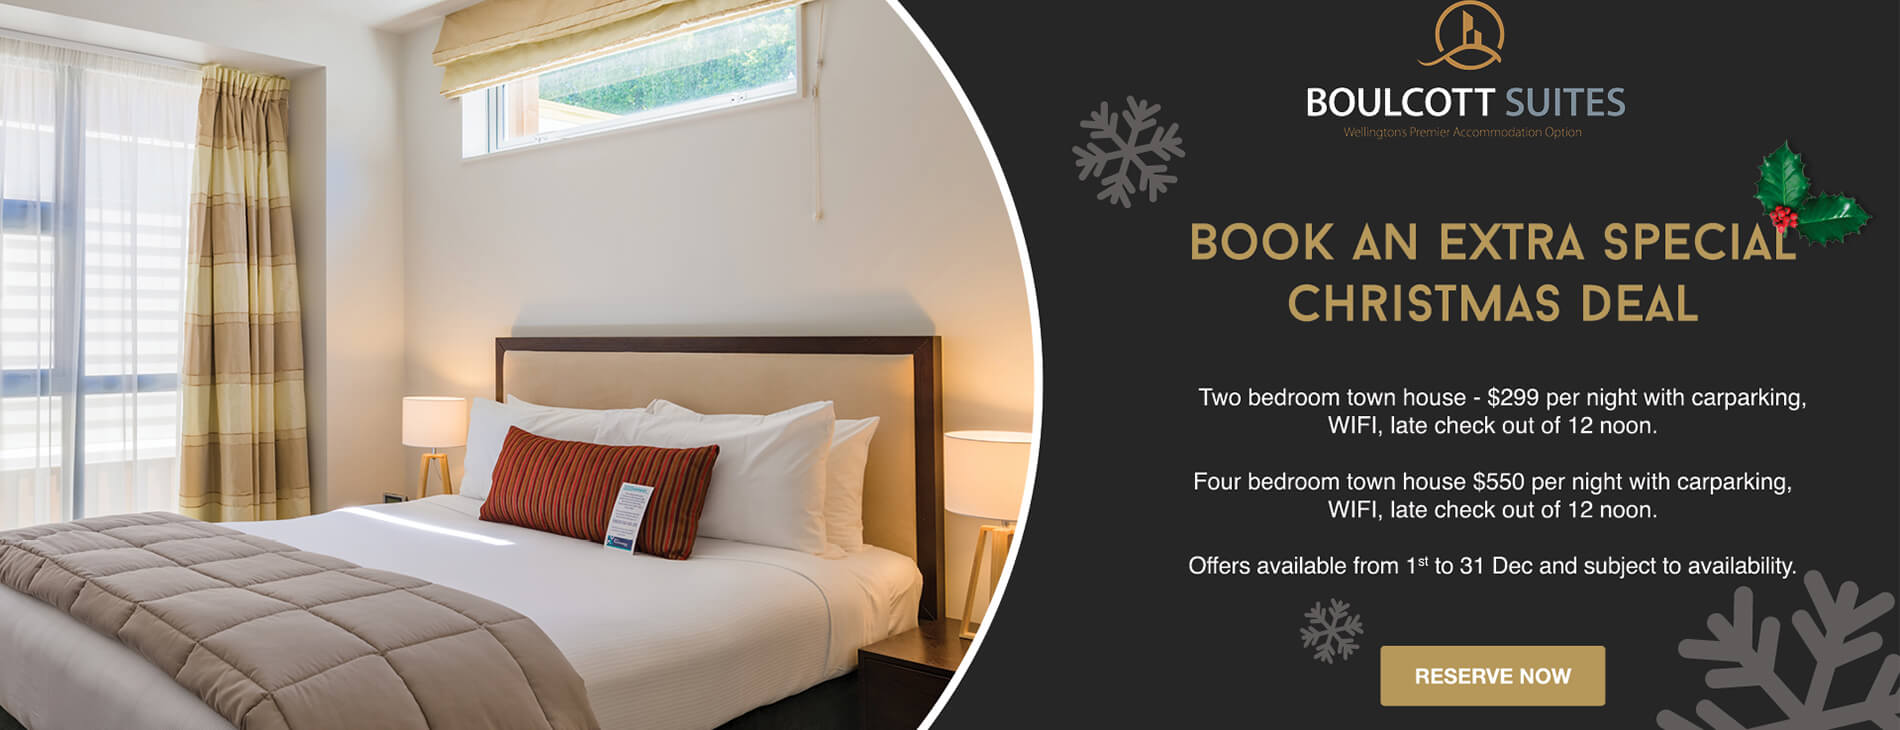 Book an Extra Special Christmas Deal